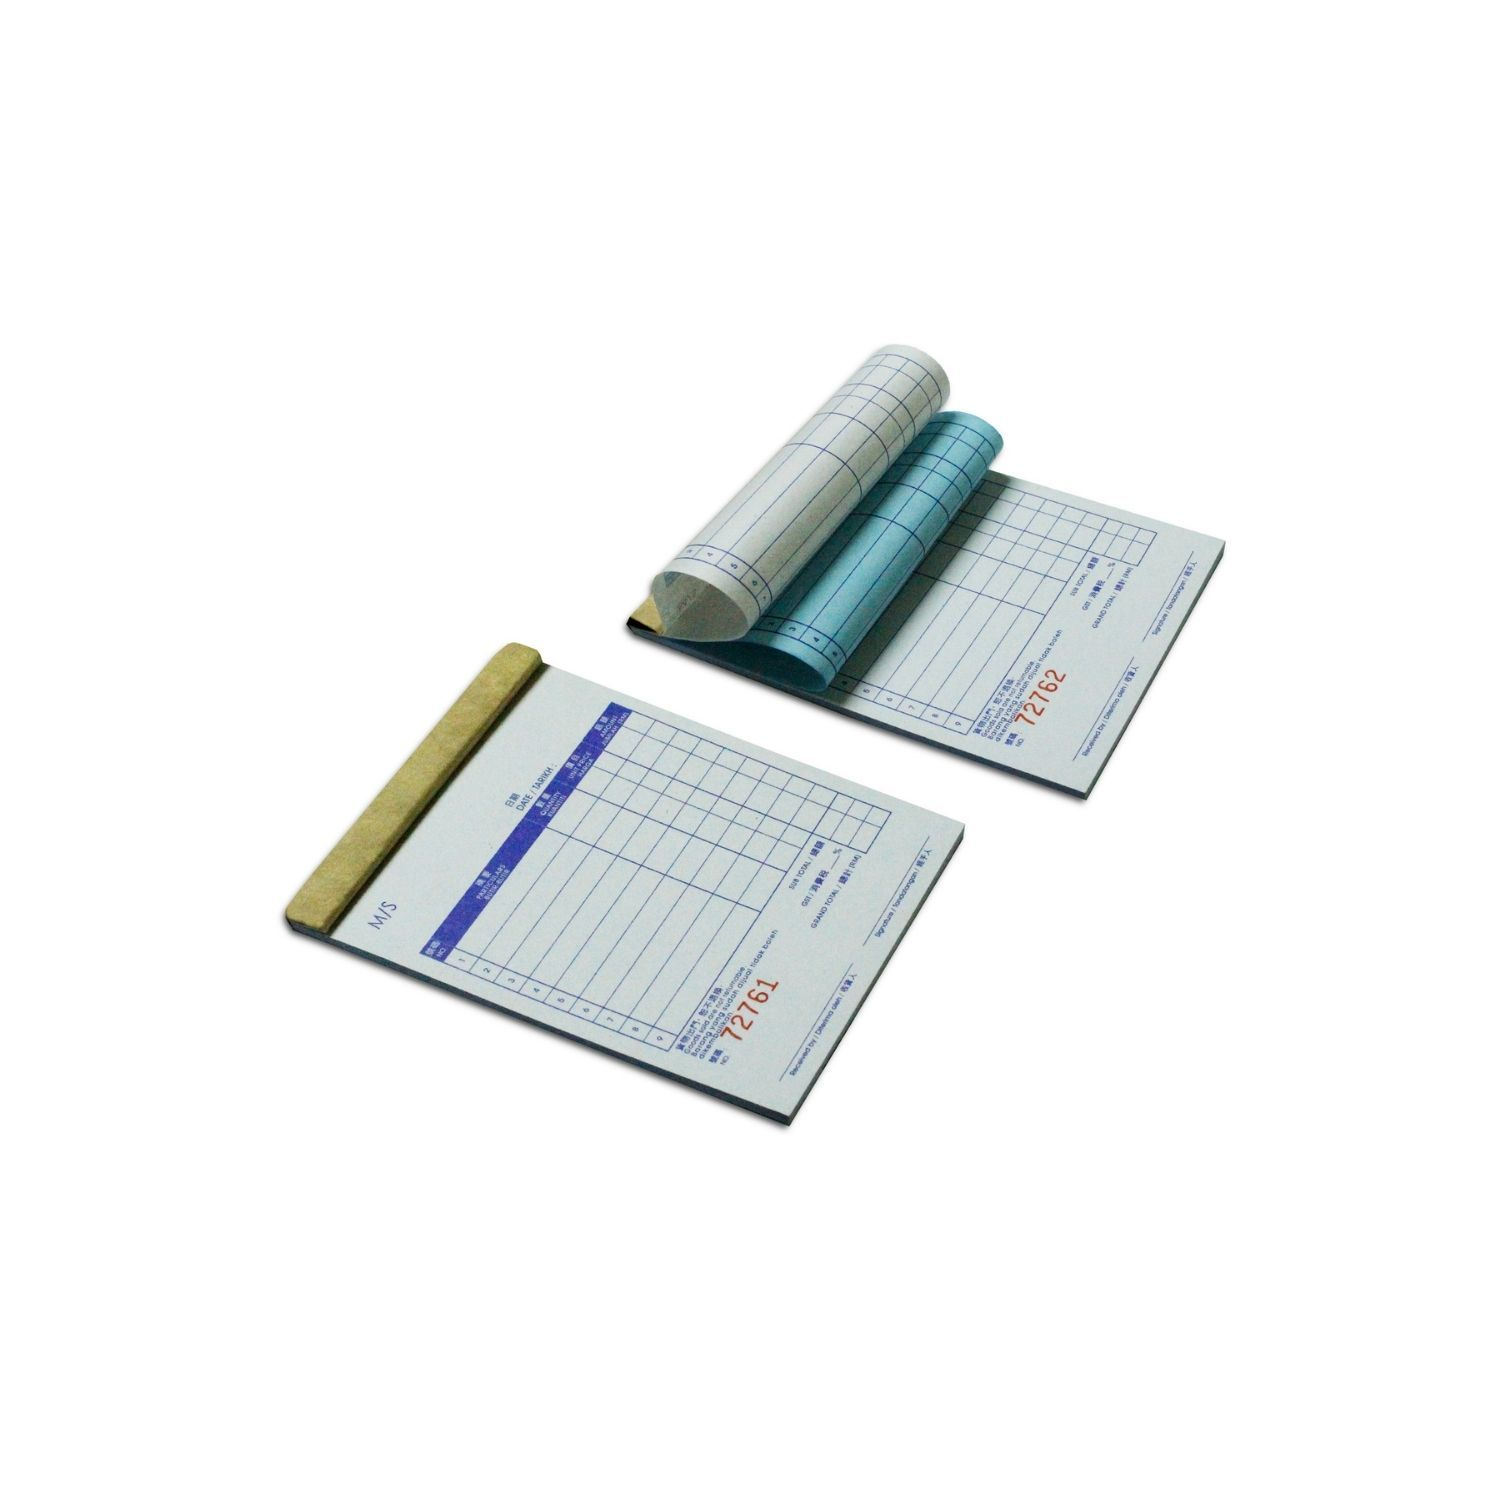 RWT Bill Book with Numbering 2X30sheets NCR Carbonless SWCN-3521,,,.jpg